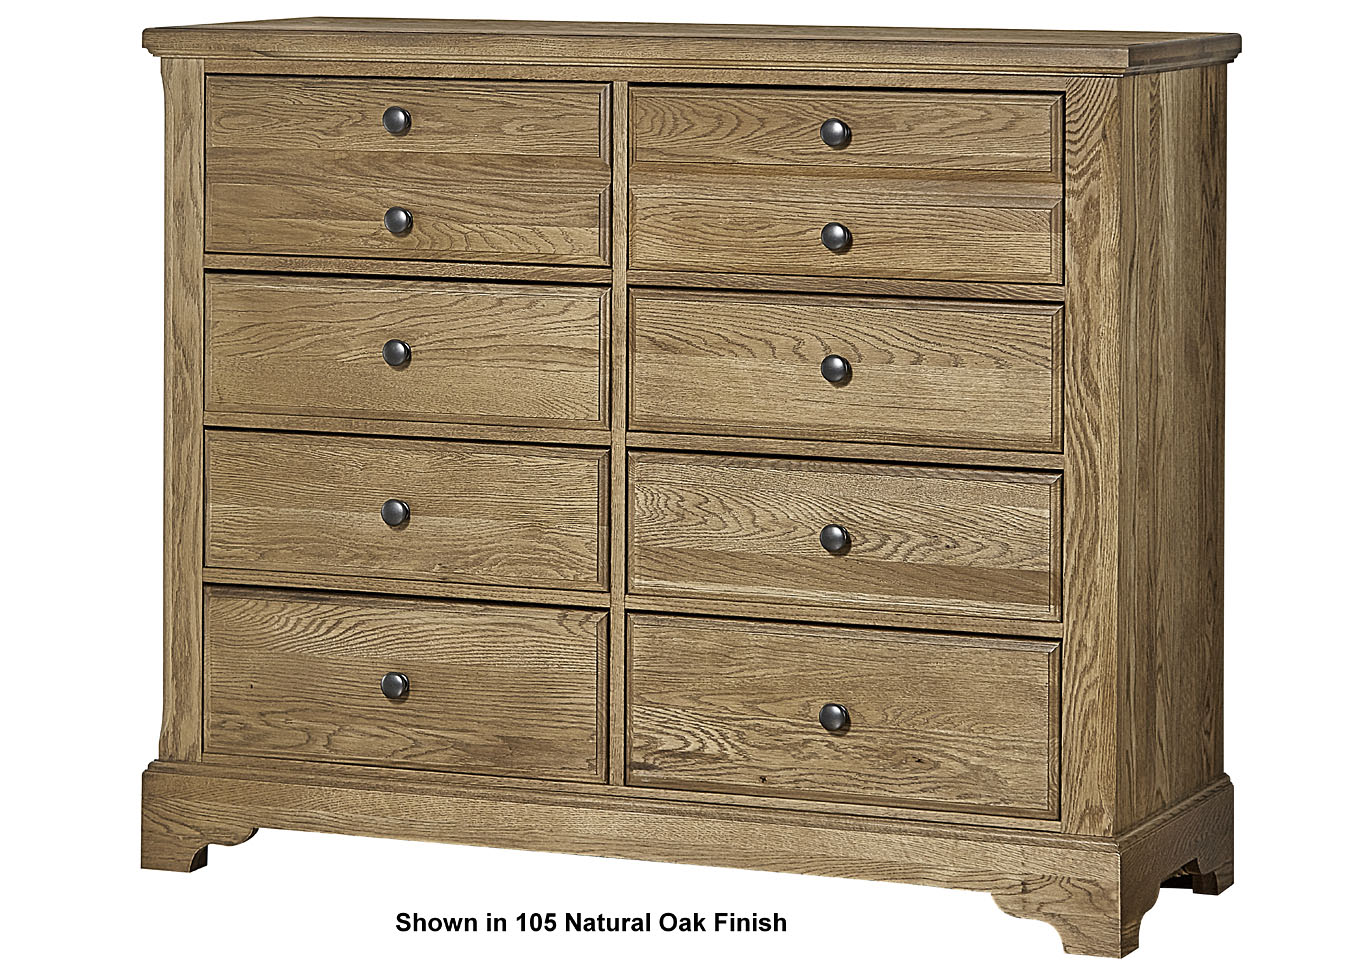 106 - Artisan Choices Dark Oak Villa Media Dresser - 8 Drawer,Vaughan-Bassett